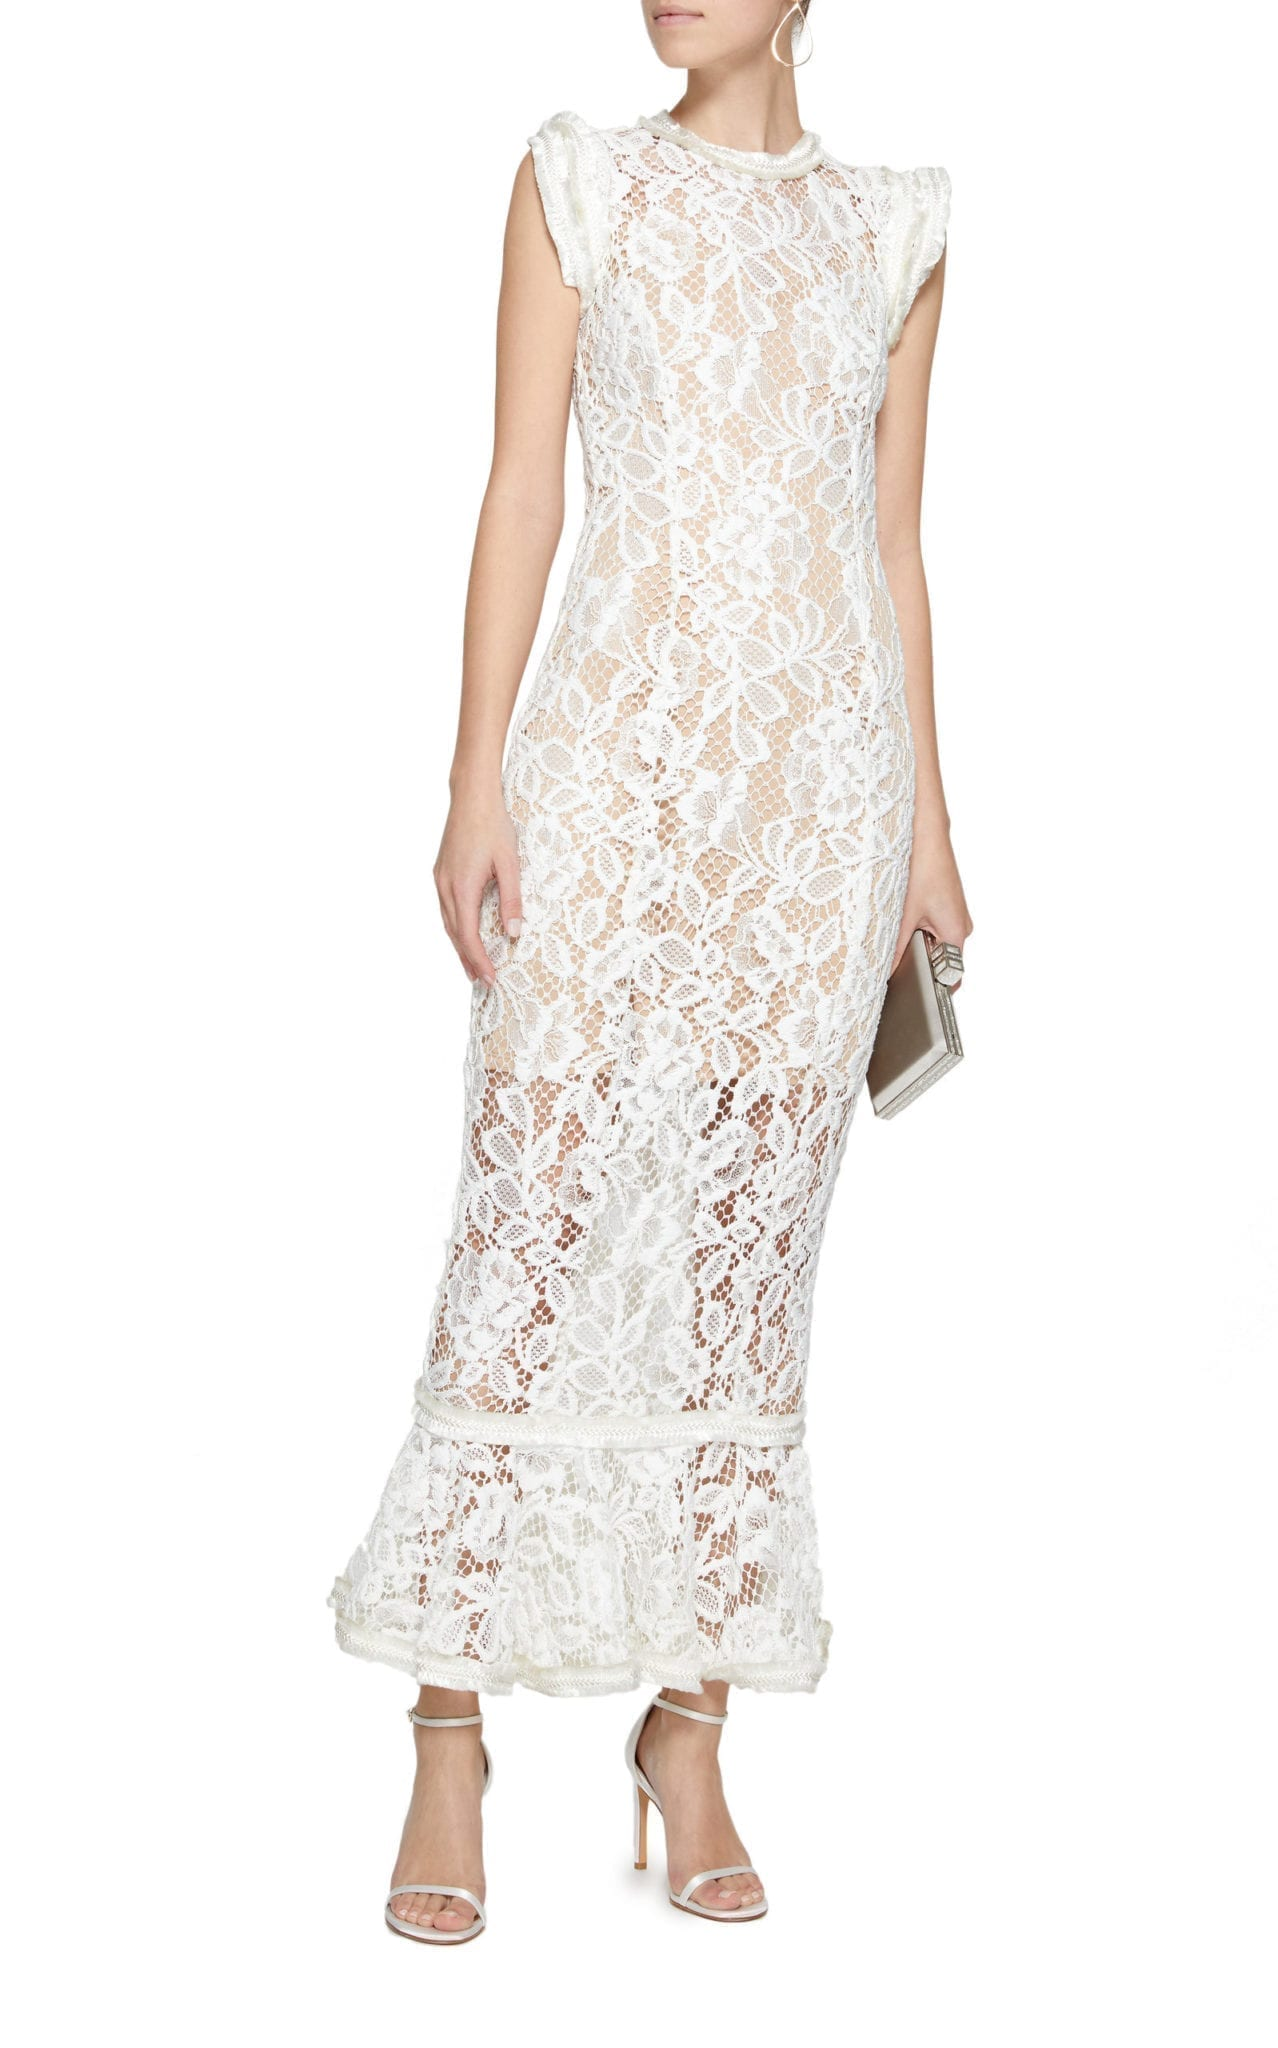 ALEXIS Kleo Lace Midi White Dress